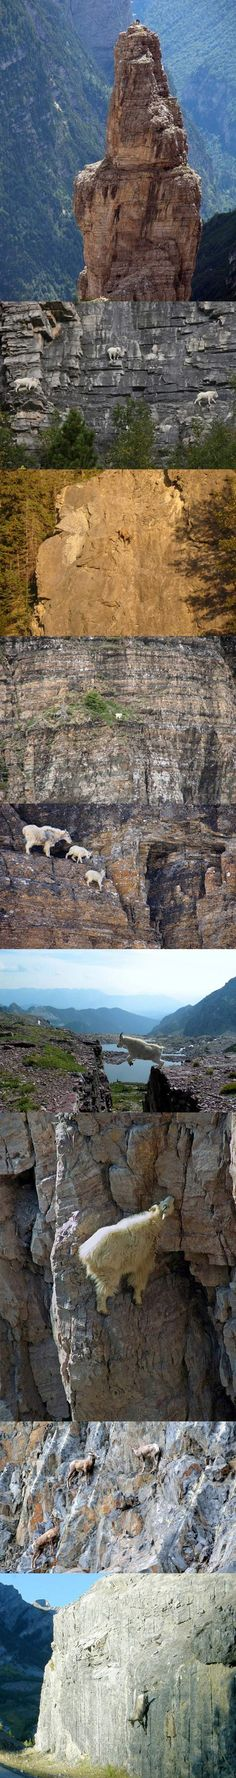 Goats climbing mountains. Well, actually it's more like goats climbing rock walls and better than any human can too!